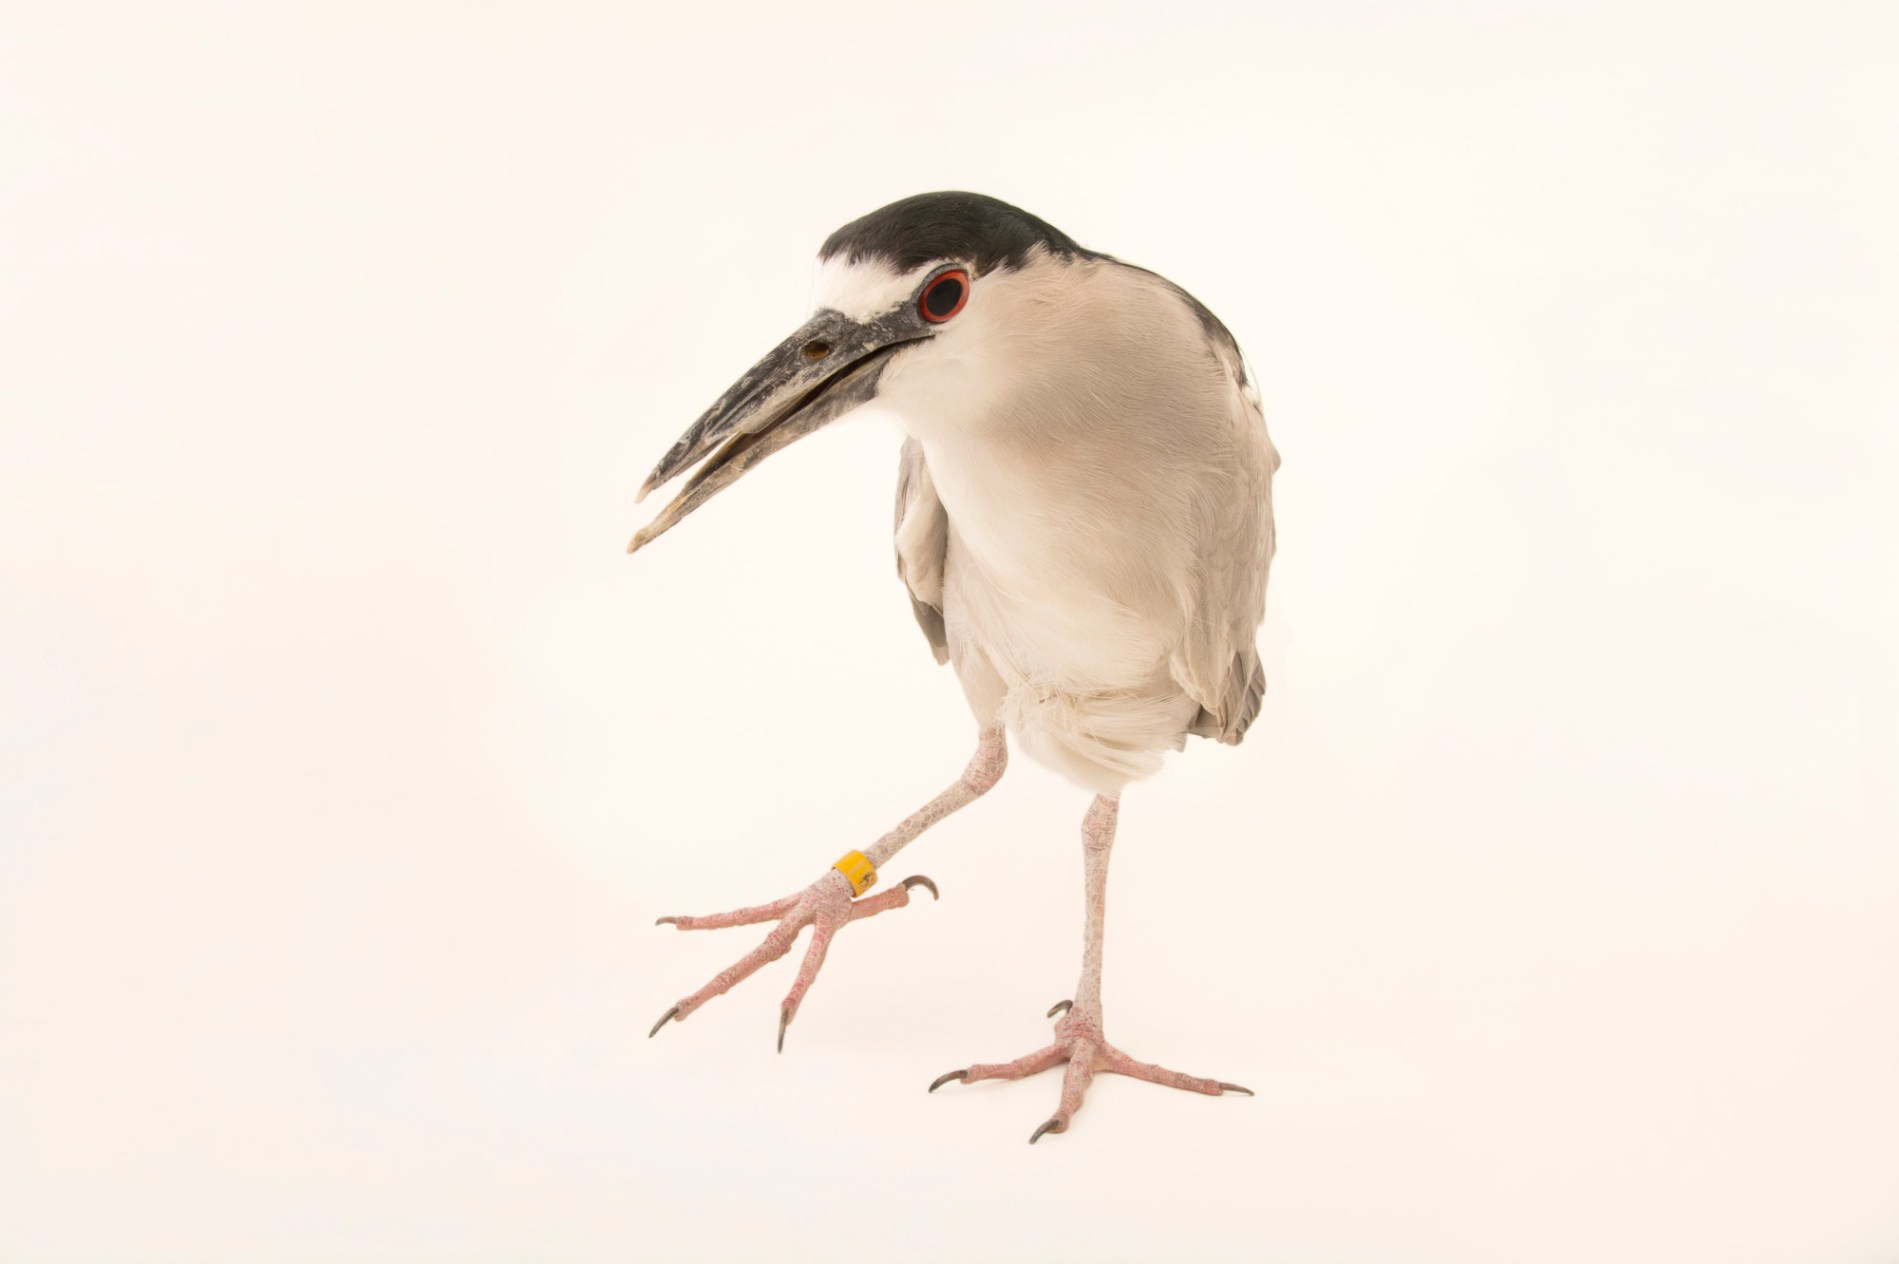 Photo: James bond the black-crowned night heron (Nycticorax nycticorax) at The Living Desert.